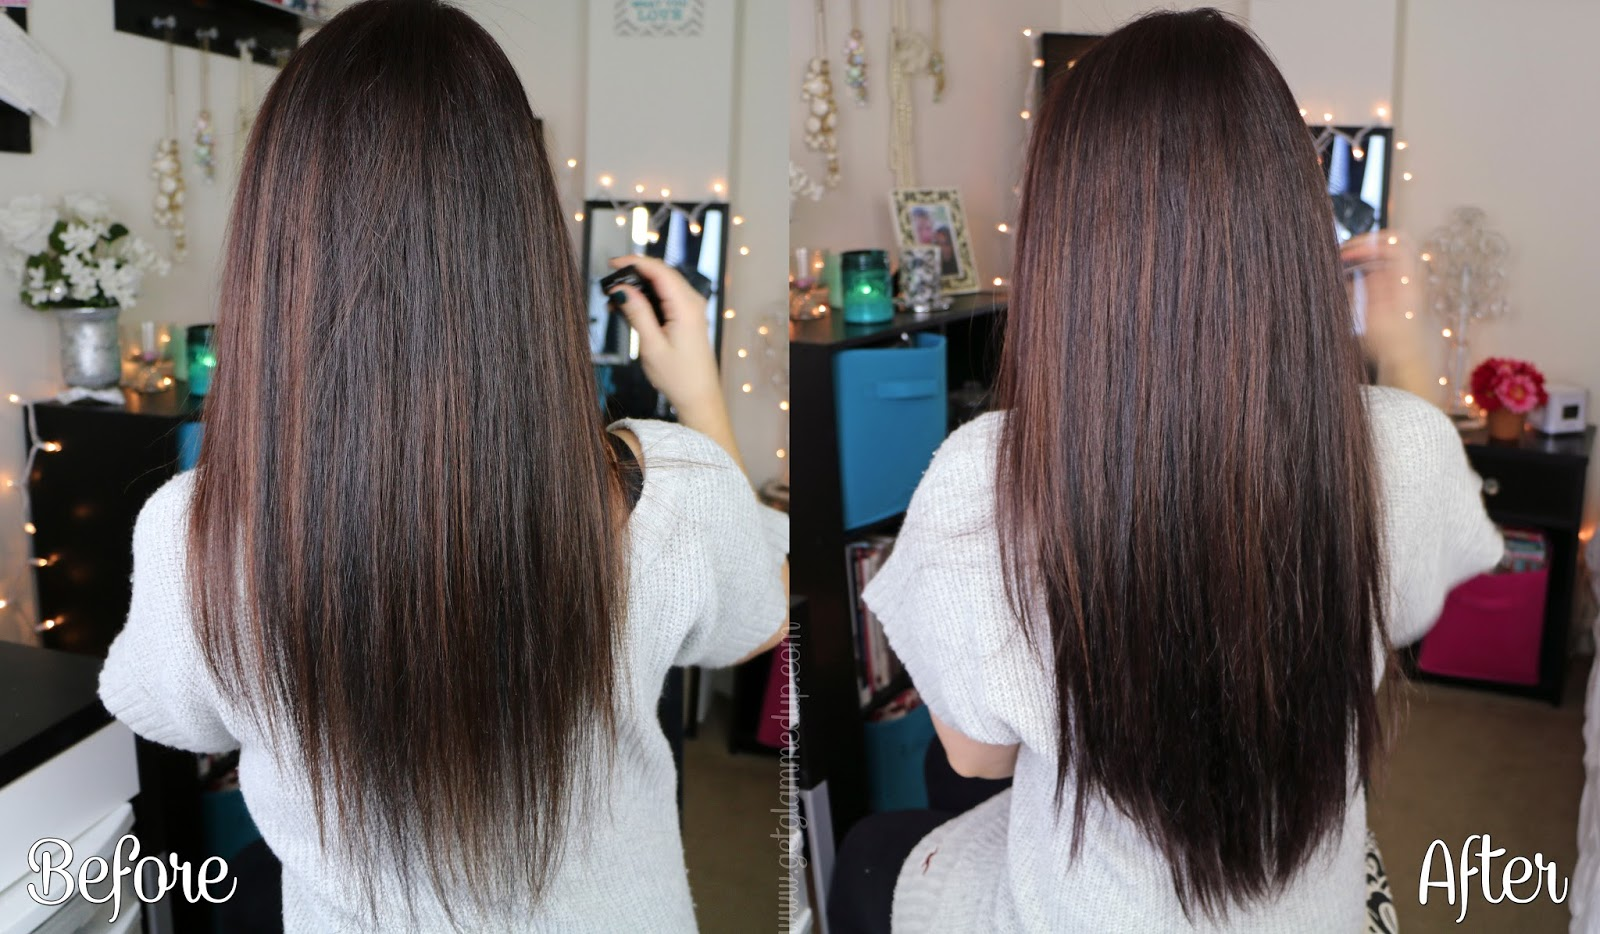 Before And After My Fantasy Hair Extensions Custom Colored 20 180 Grams Natural Ends